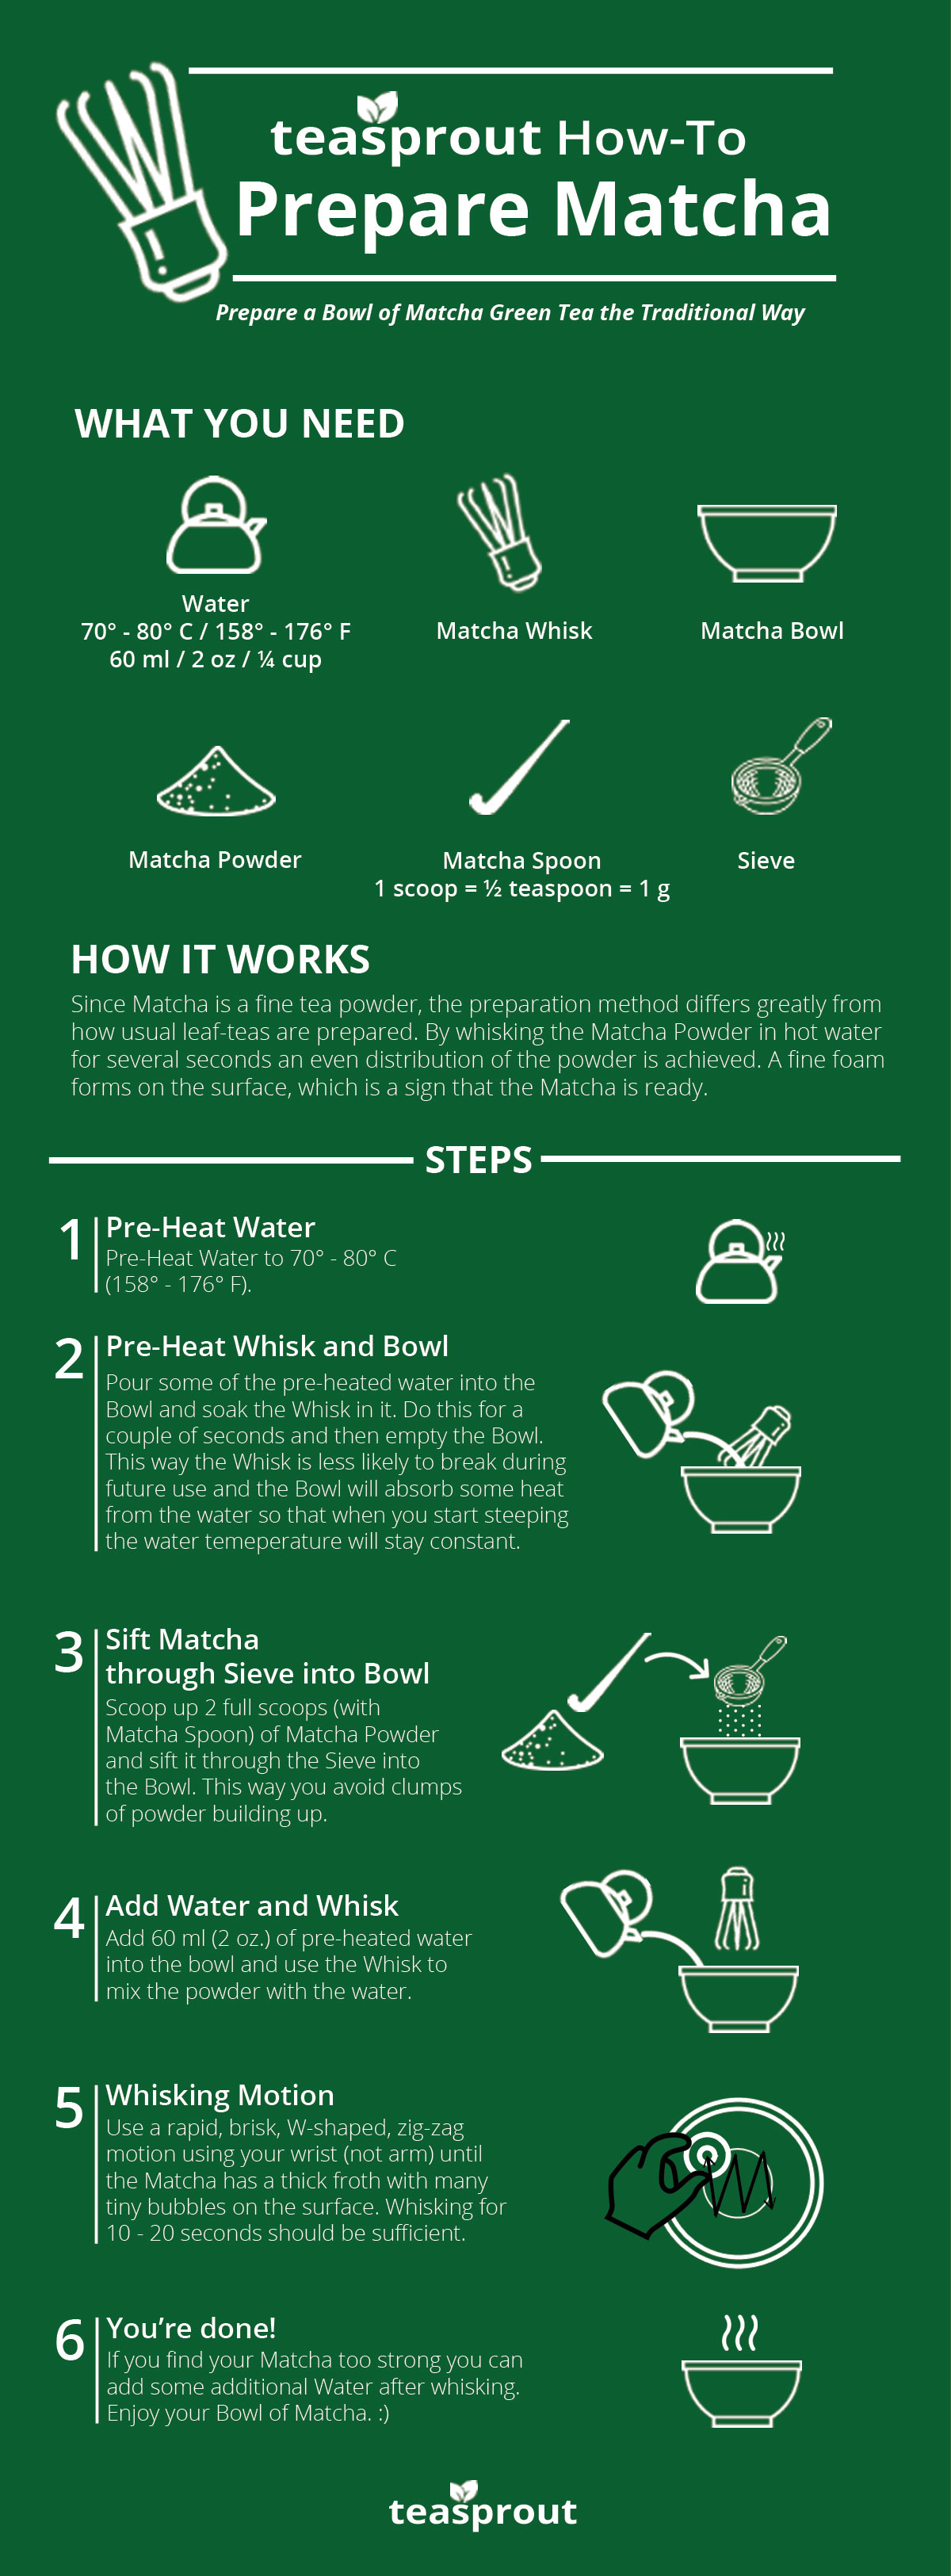 teasprout_howto_matcha_large_more_detail_v04